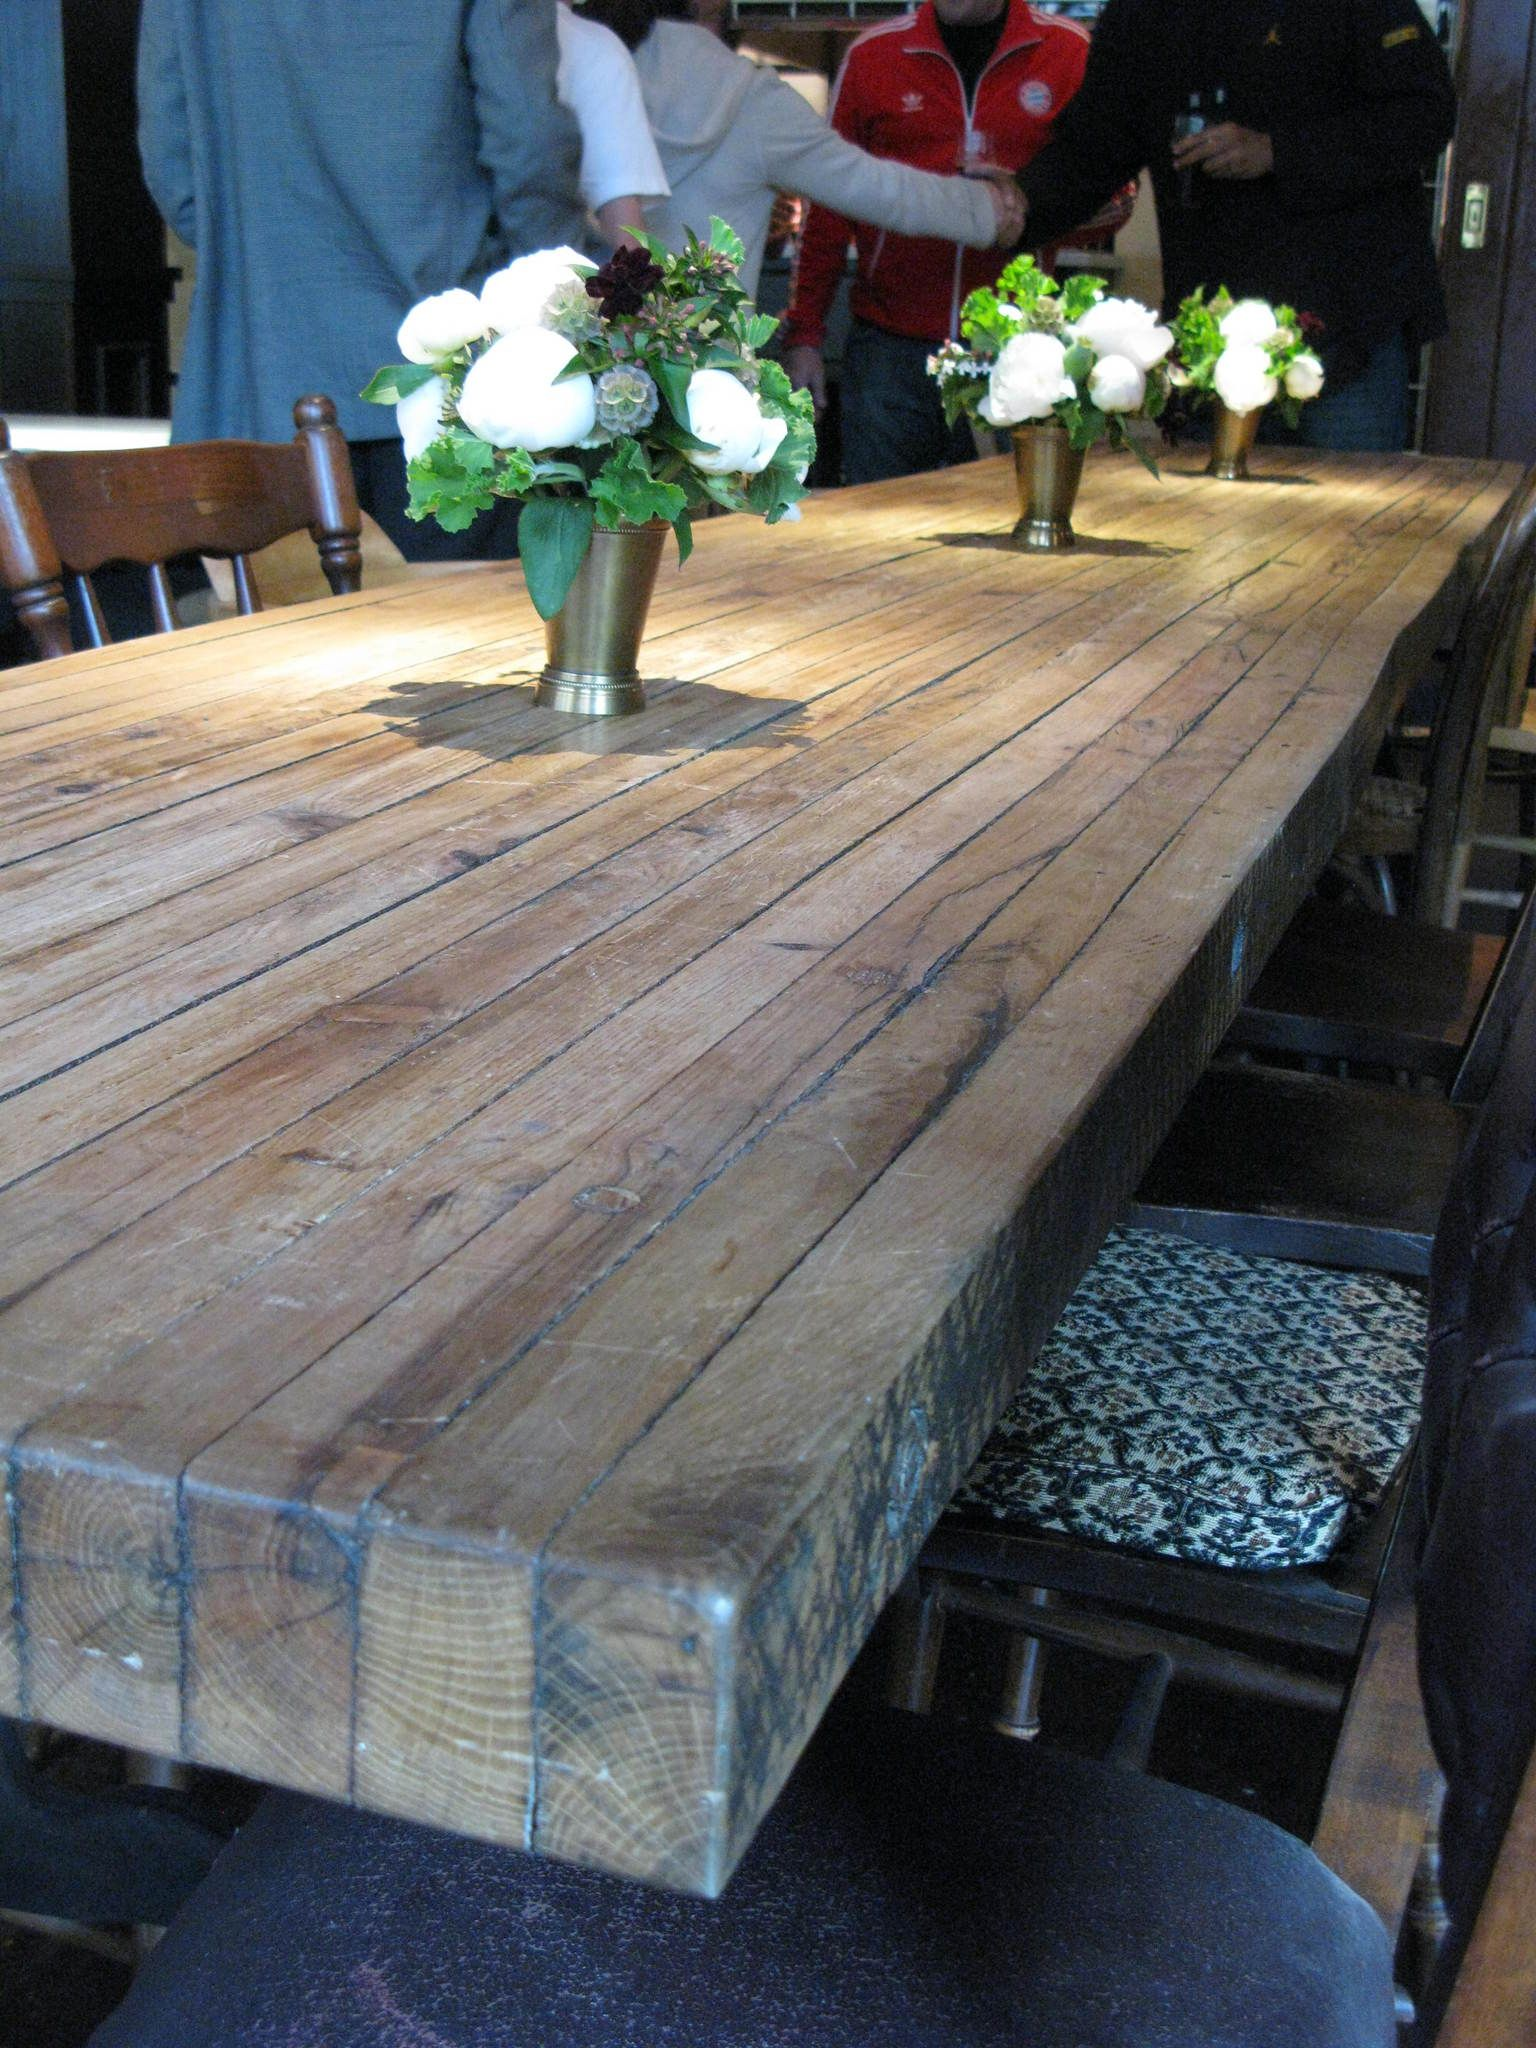 Antique rustic dining table - Furniture Ideas Howling Butcher Block Table Options For Artistic Room Furniture Spectacular Reclaimed Wooden Butcher Block Table As Rustic Dining Table